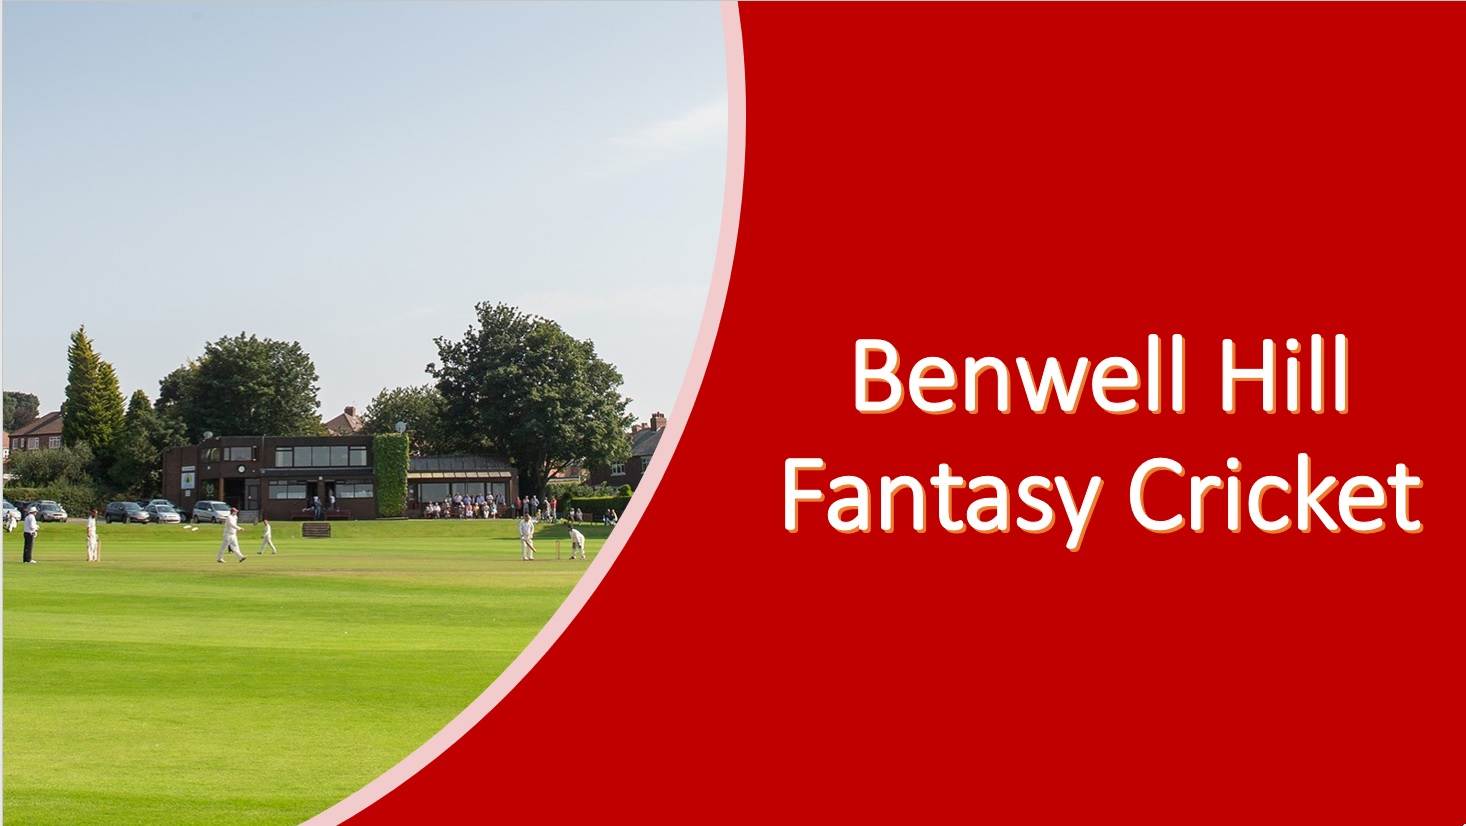 Benwell Hill Fantasy Cricket - £100 of Hill bar credit to be won